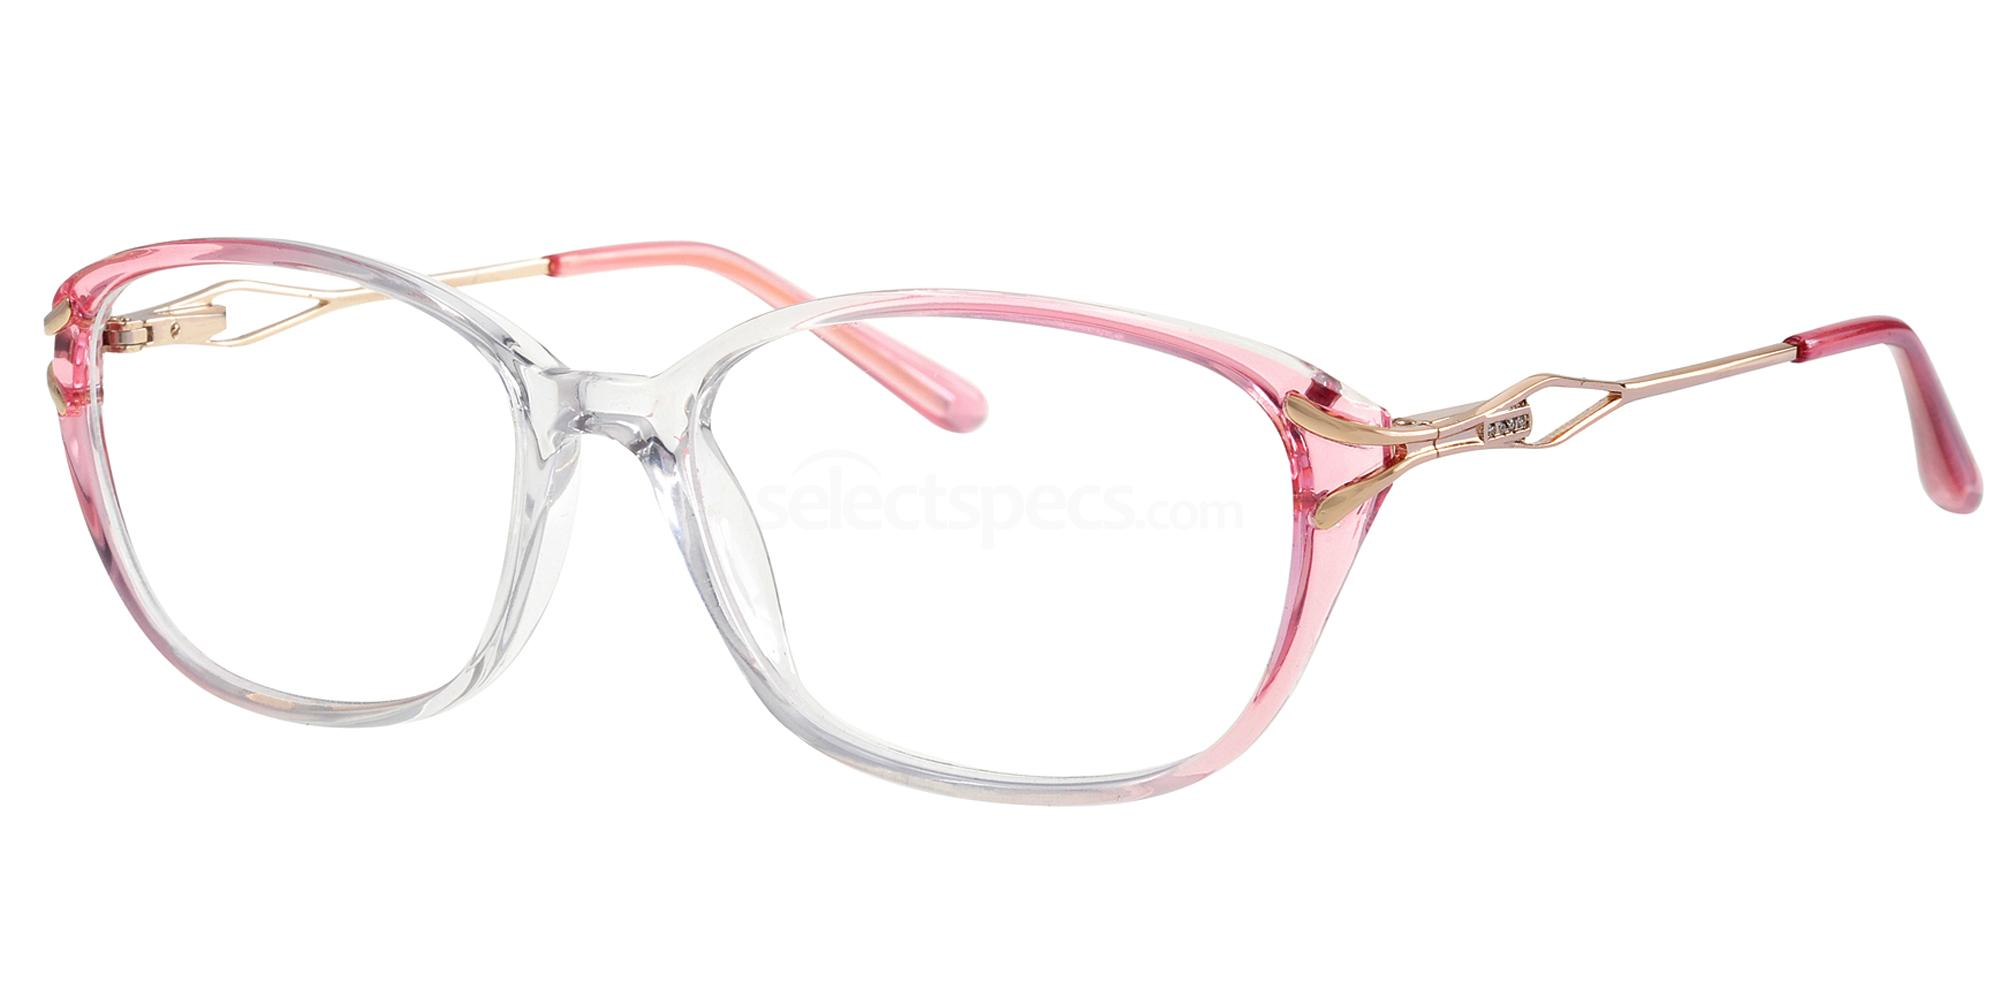 C40 4561 Glasses, Visage Elite